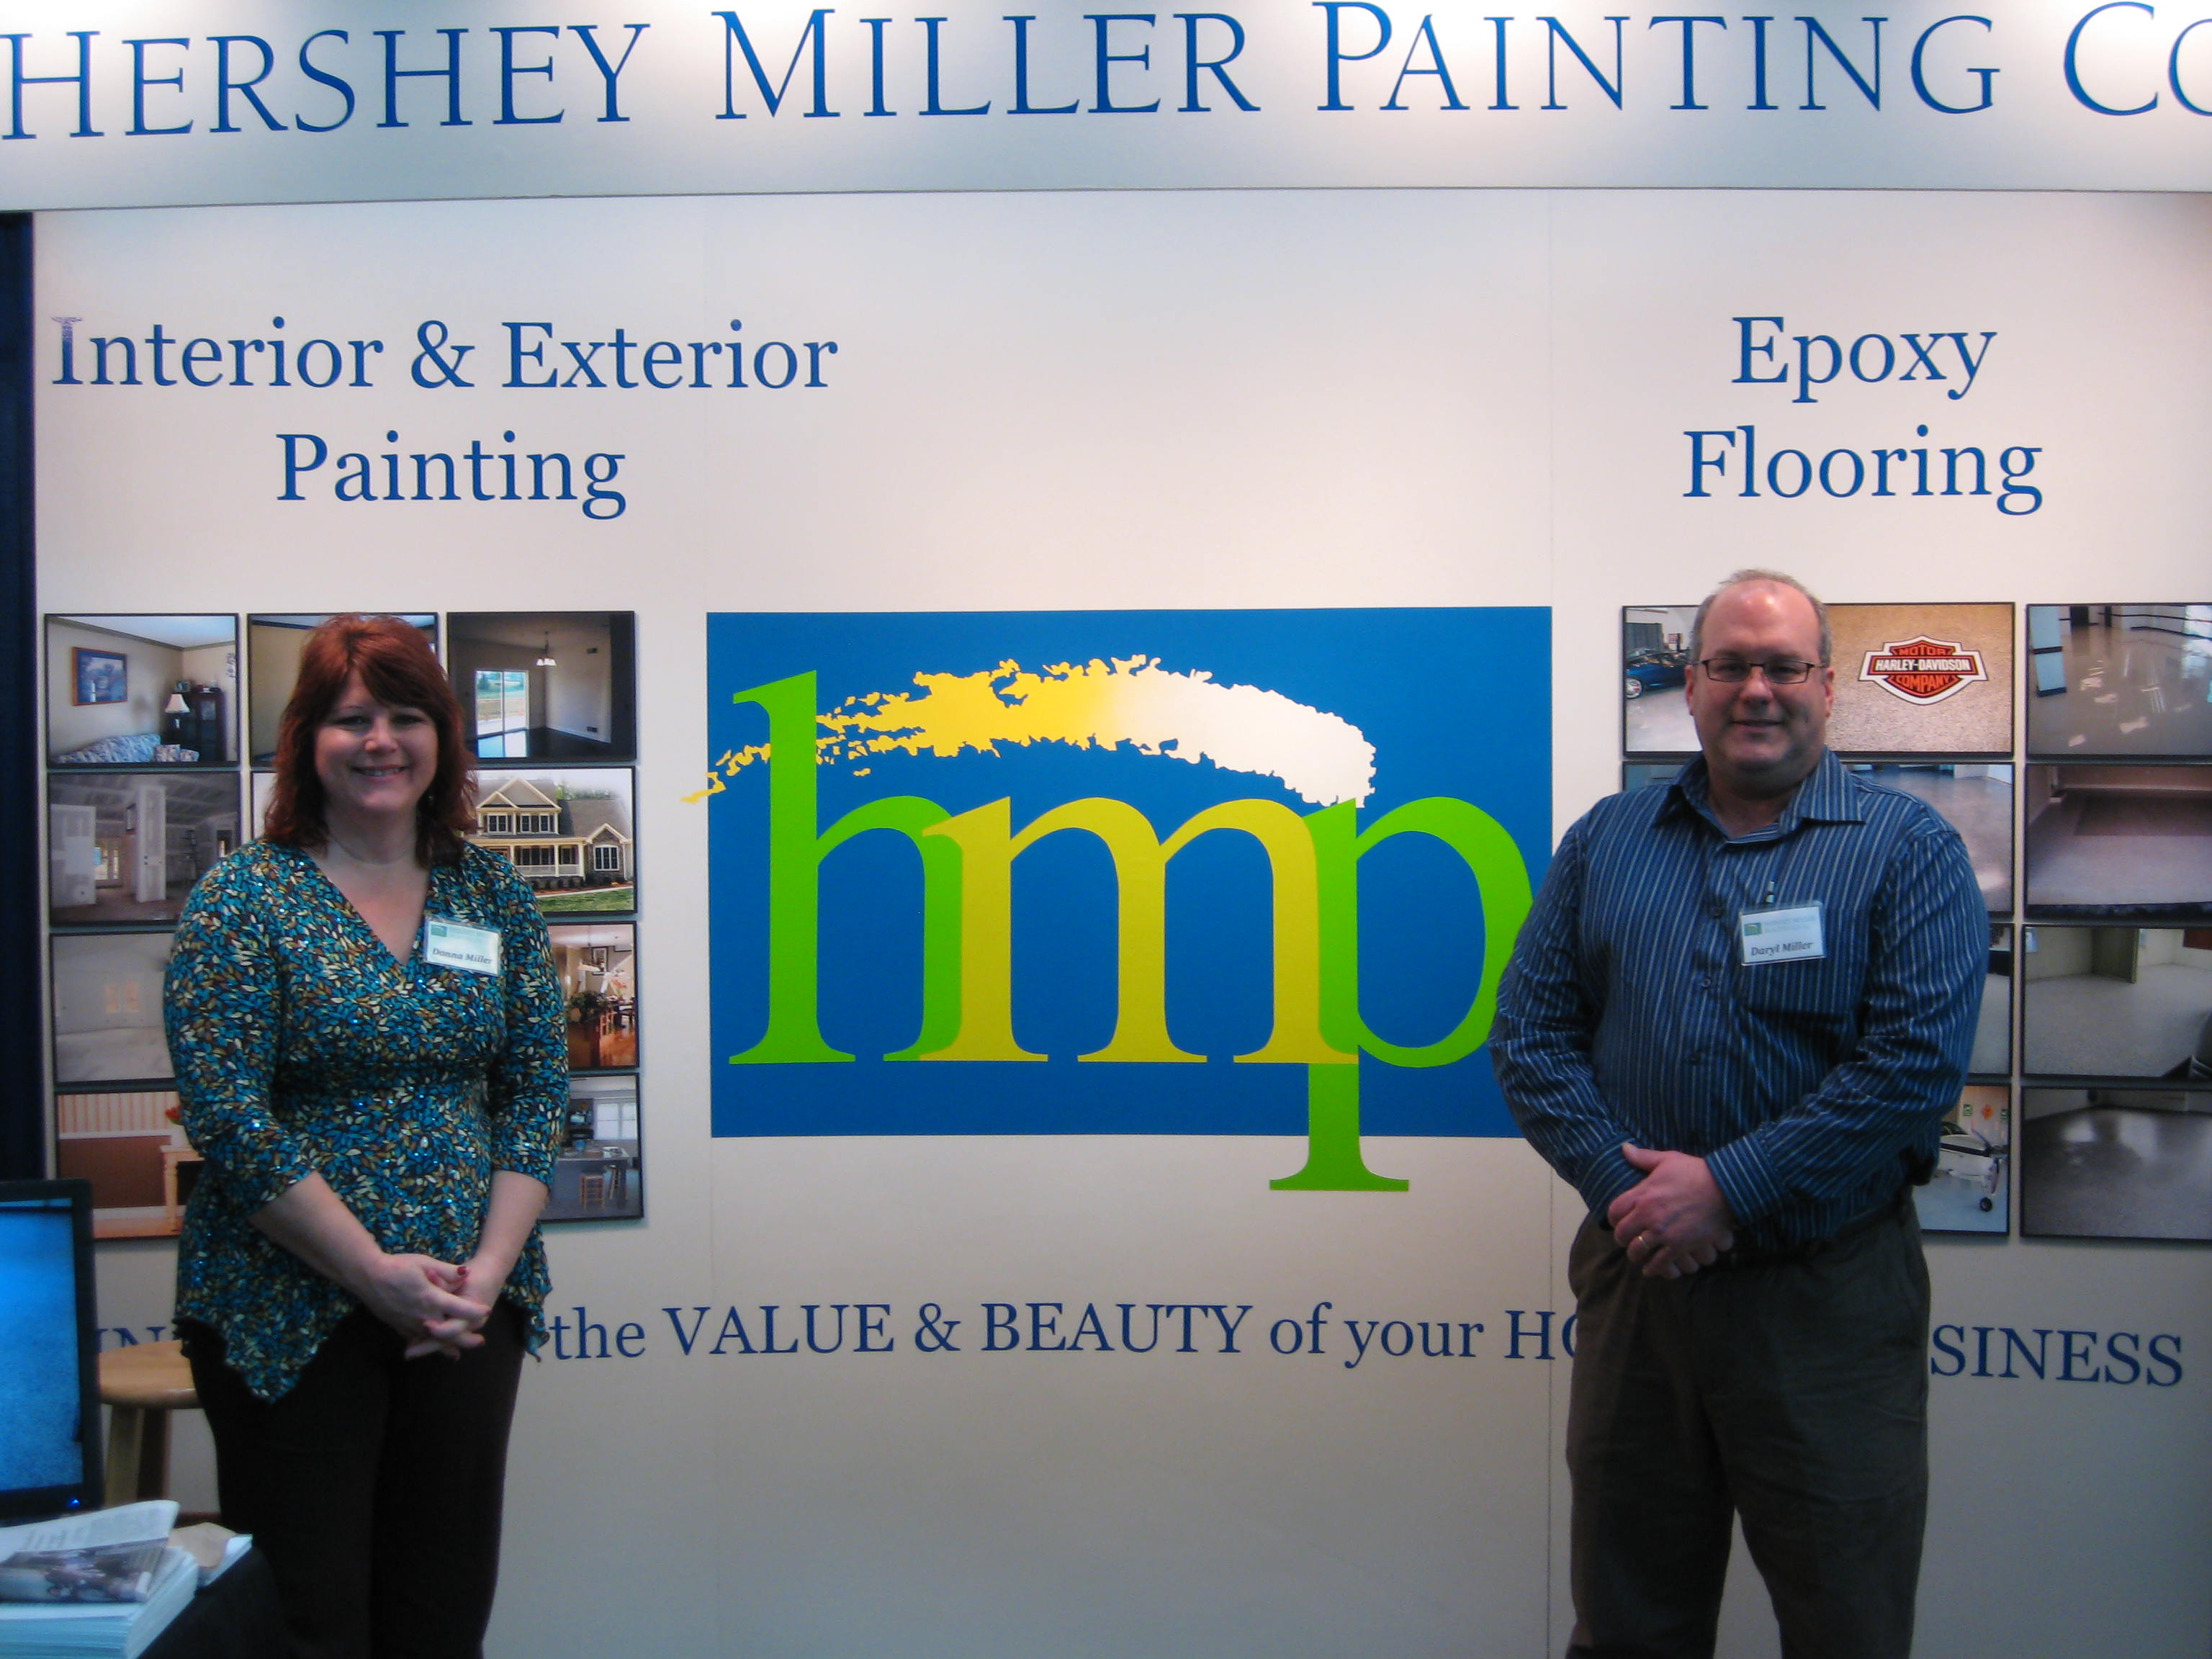 The Owners of Hershey Miller Painting Co